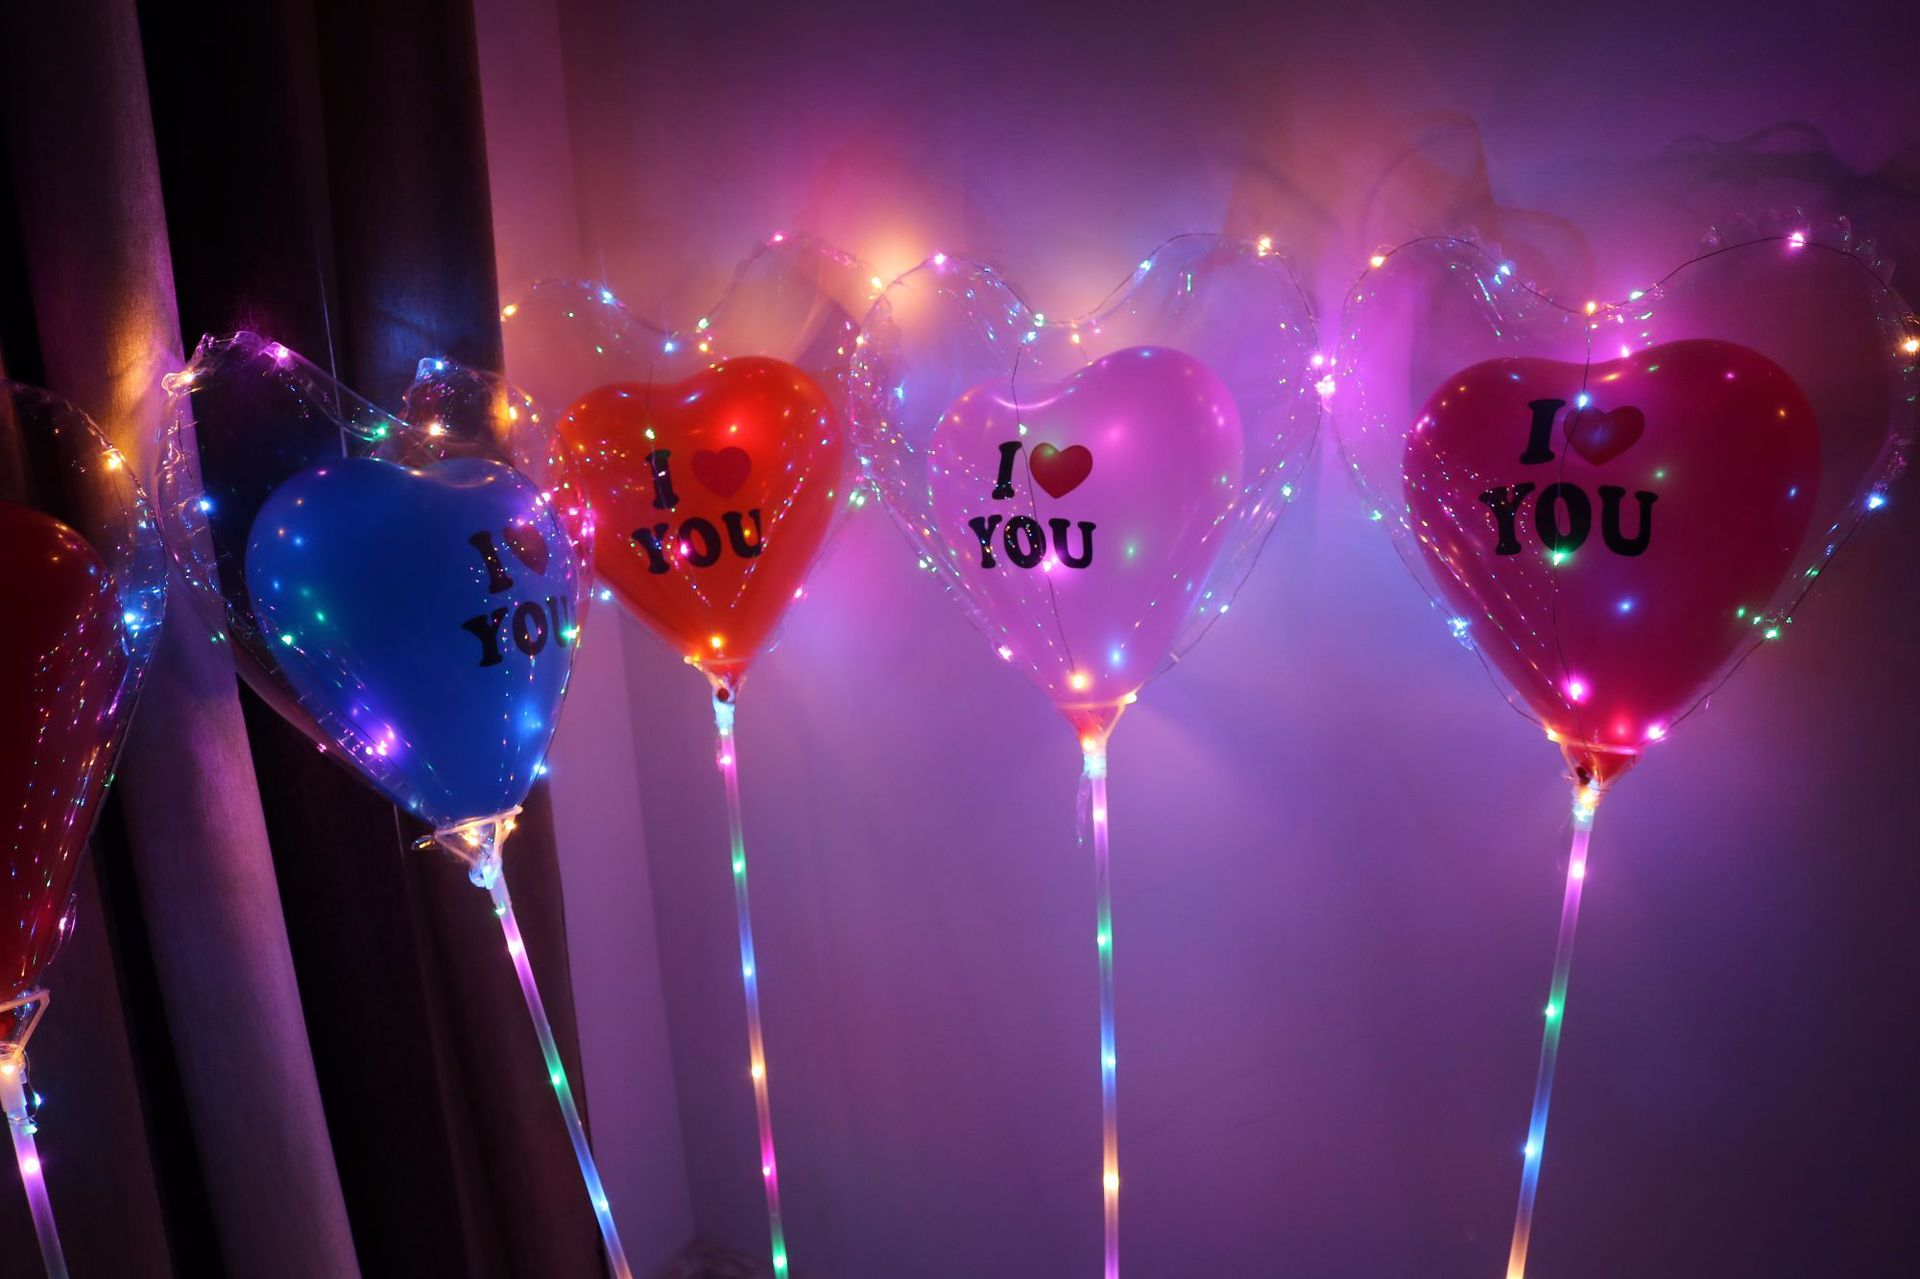 LED Balloon Set Heart Shape Clear Bobo Transparent Balloon With 70cm Pvc Tube Wedding Decorations Birthday Party Supplies